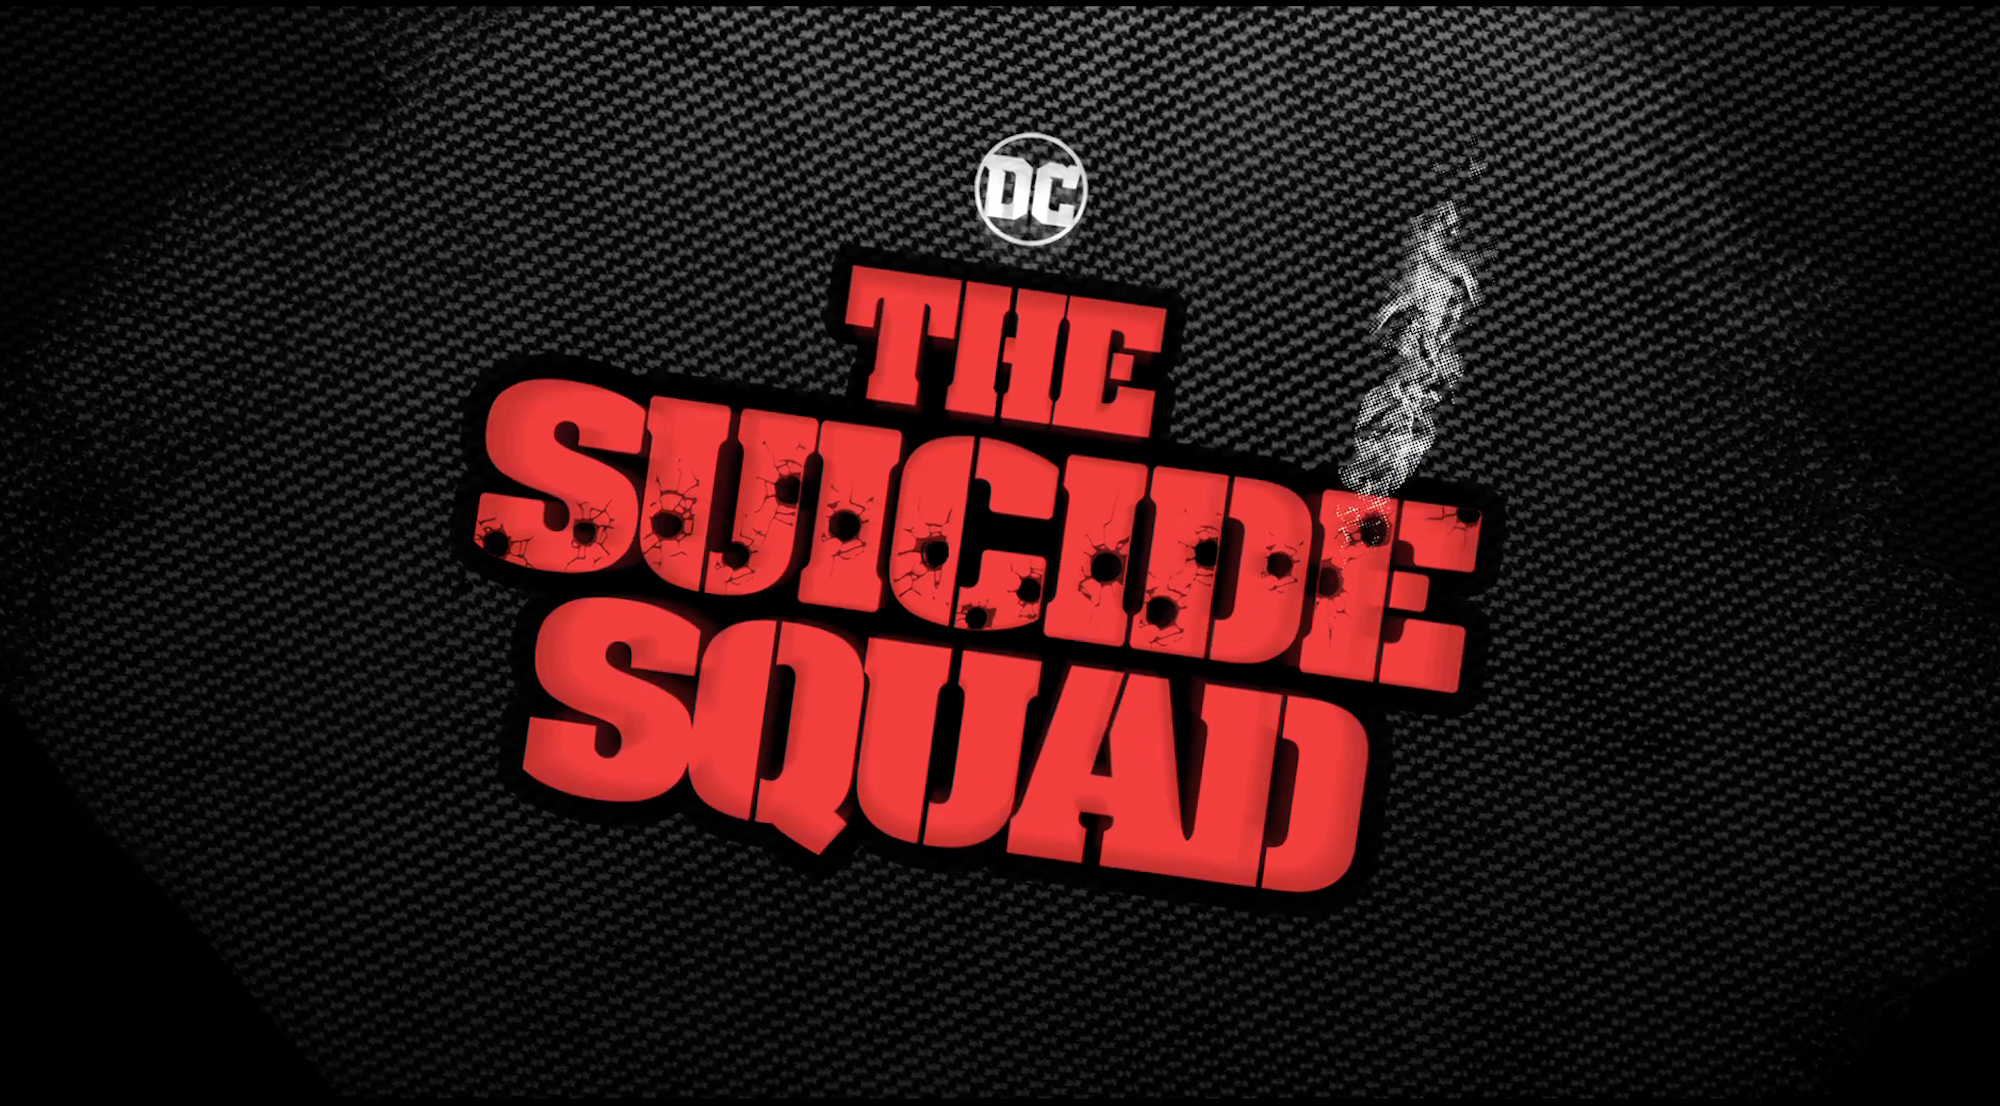 The new 'The Suicide Squad' logo revealed at DC FanDome.